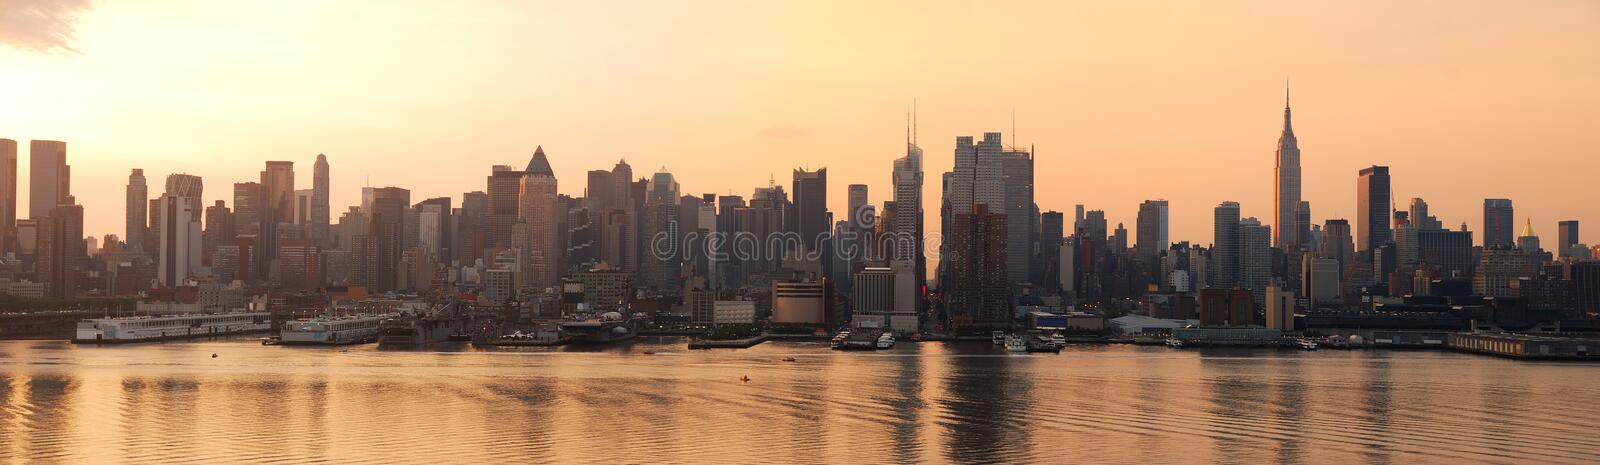 Panorama do nascer do sol de New York City foto de stock